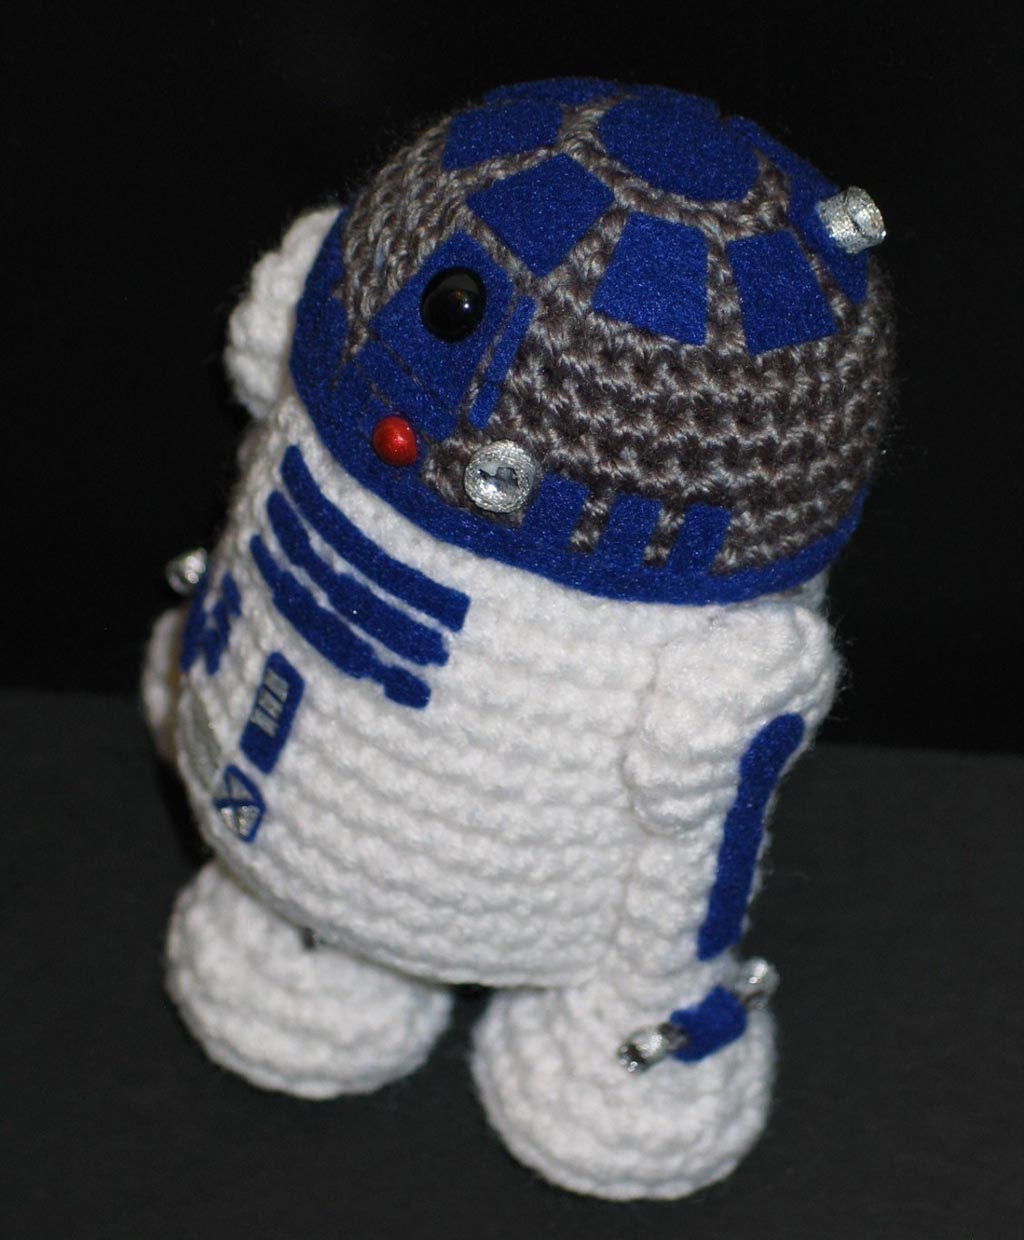 Free Crochet Patterns Amigurumi Star Wars : Make Your Own Star Wars R2-D2 Amigurumi Gadgetsin